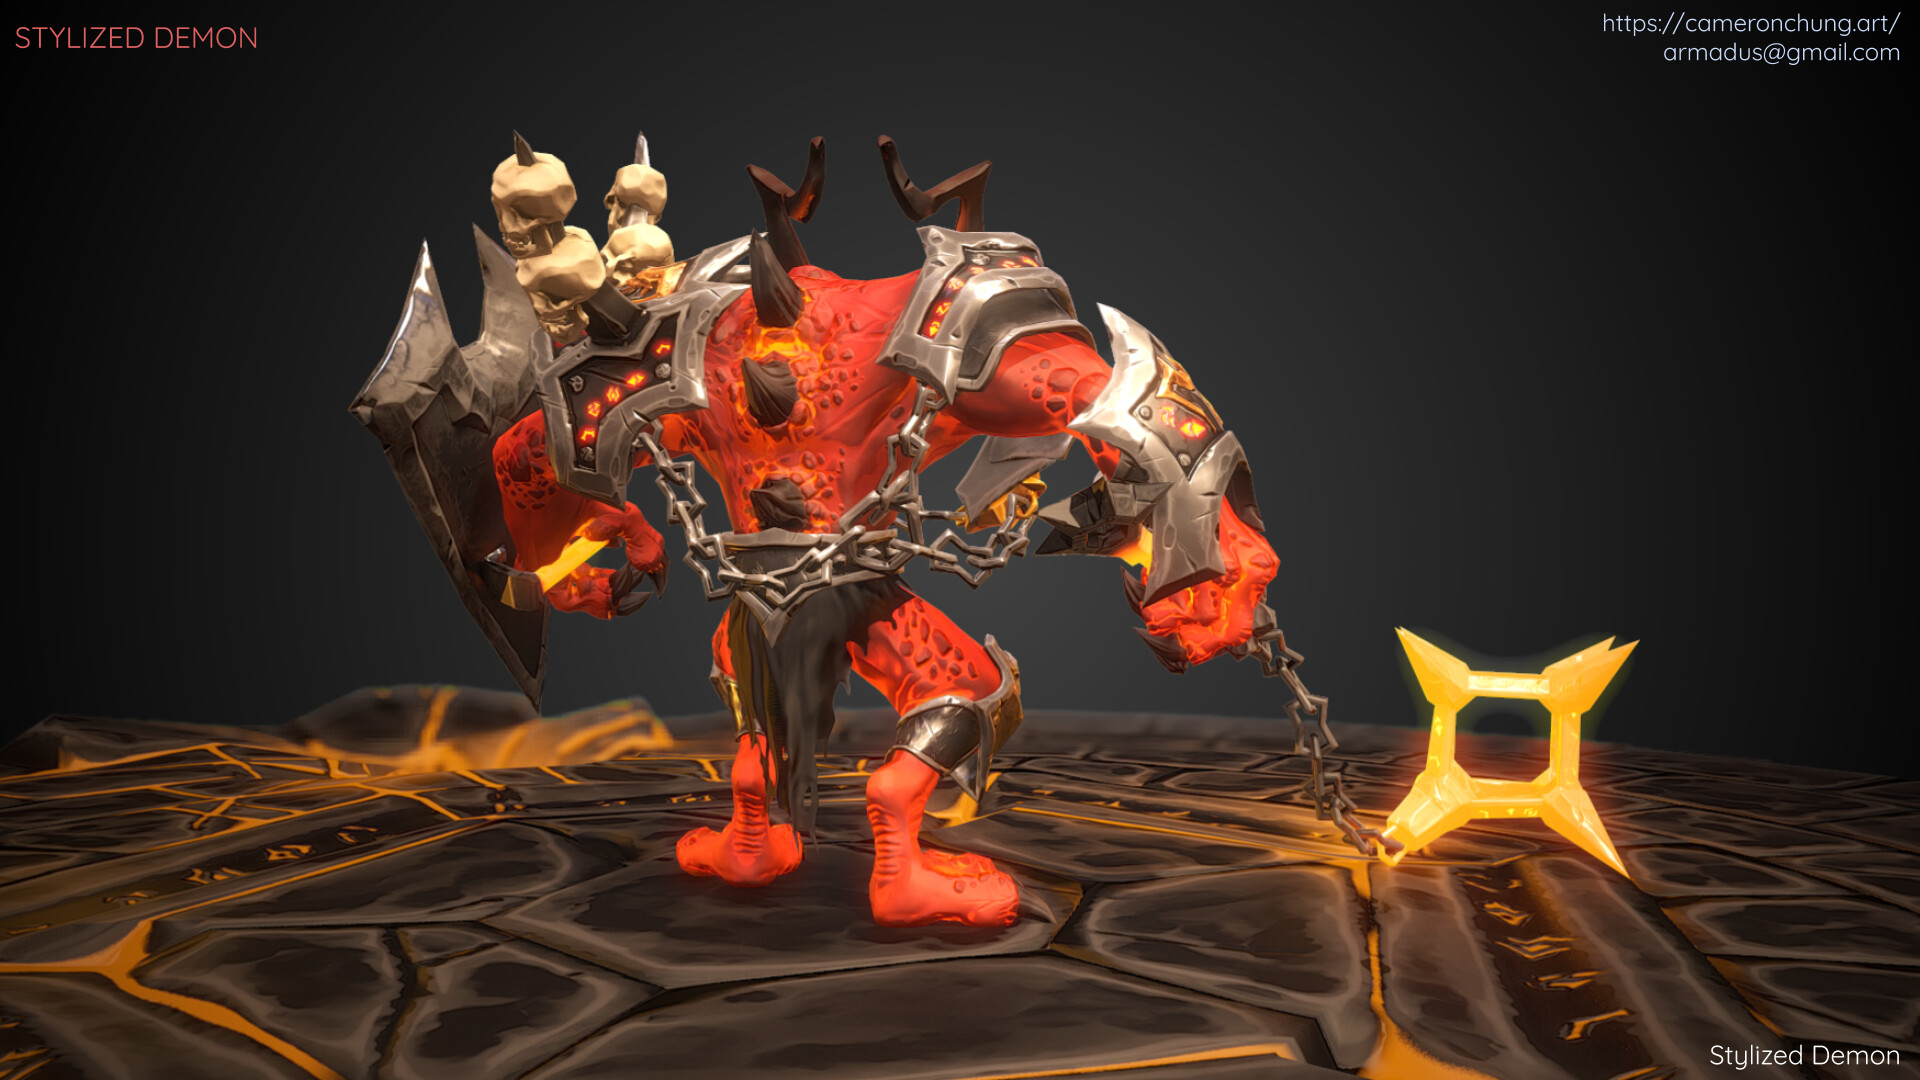 Stylized Demon - Marmoset Toolbag 2